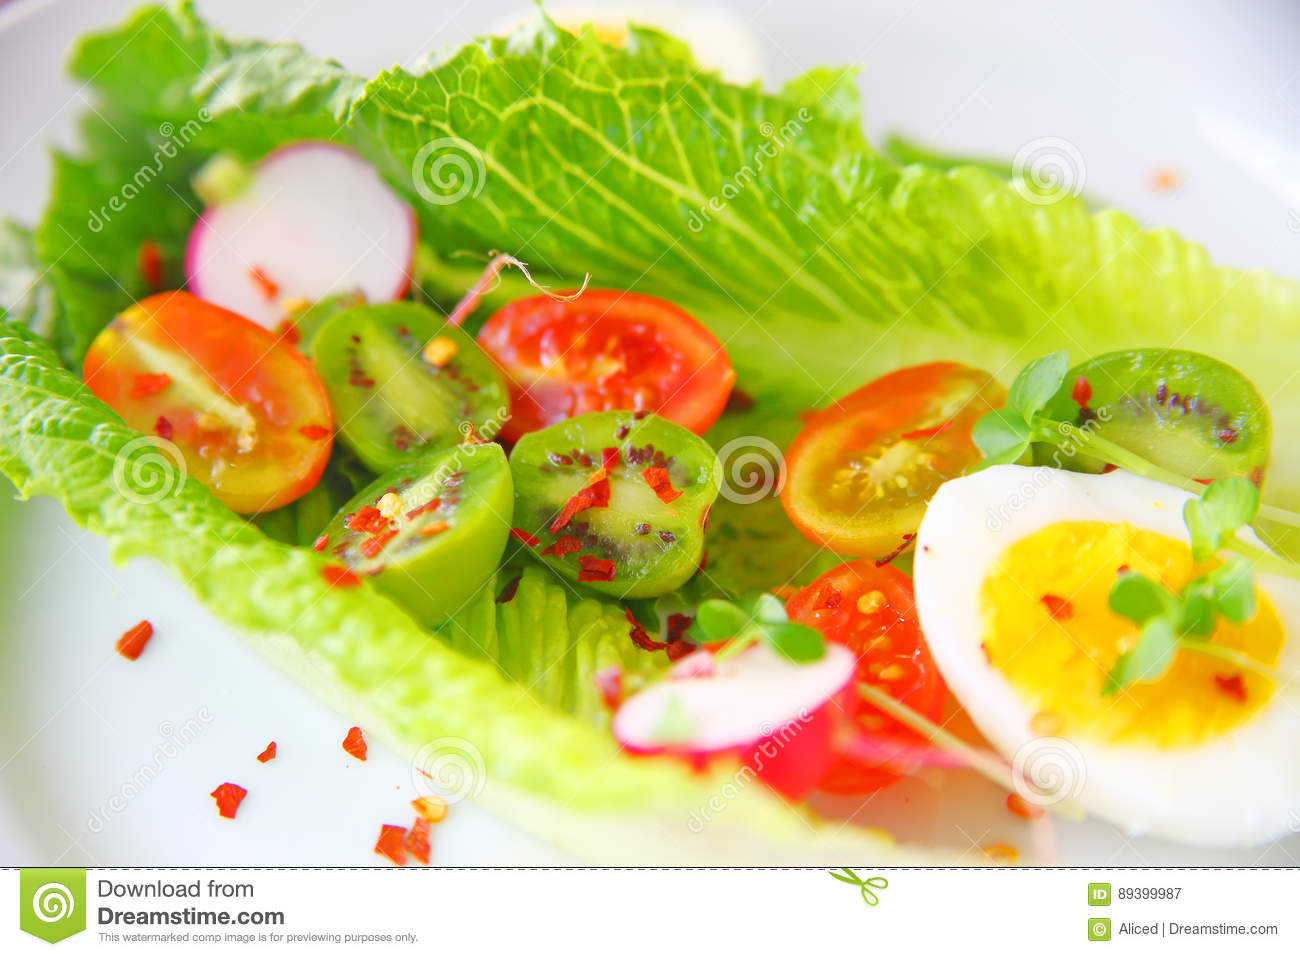 Romaine lettuce with baby kiwis and cherry tomatoes